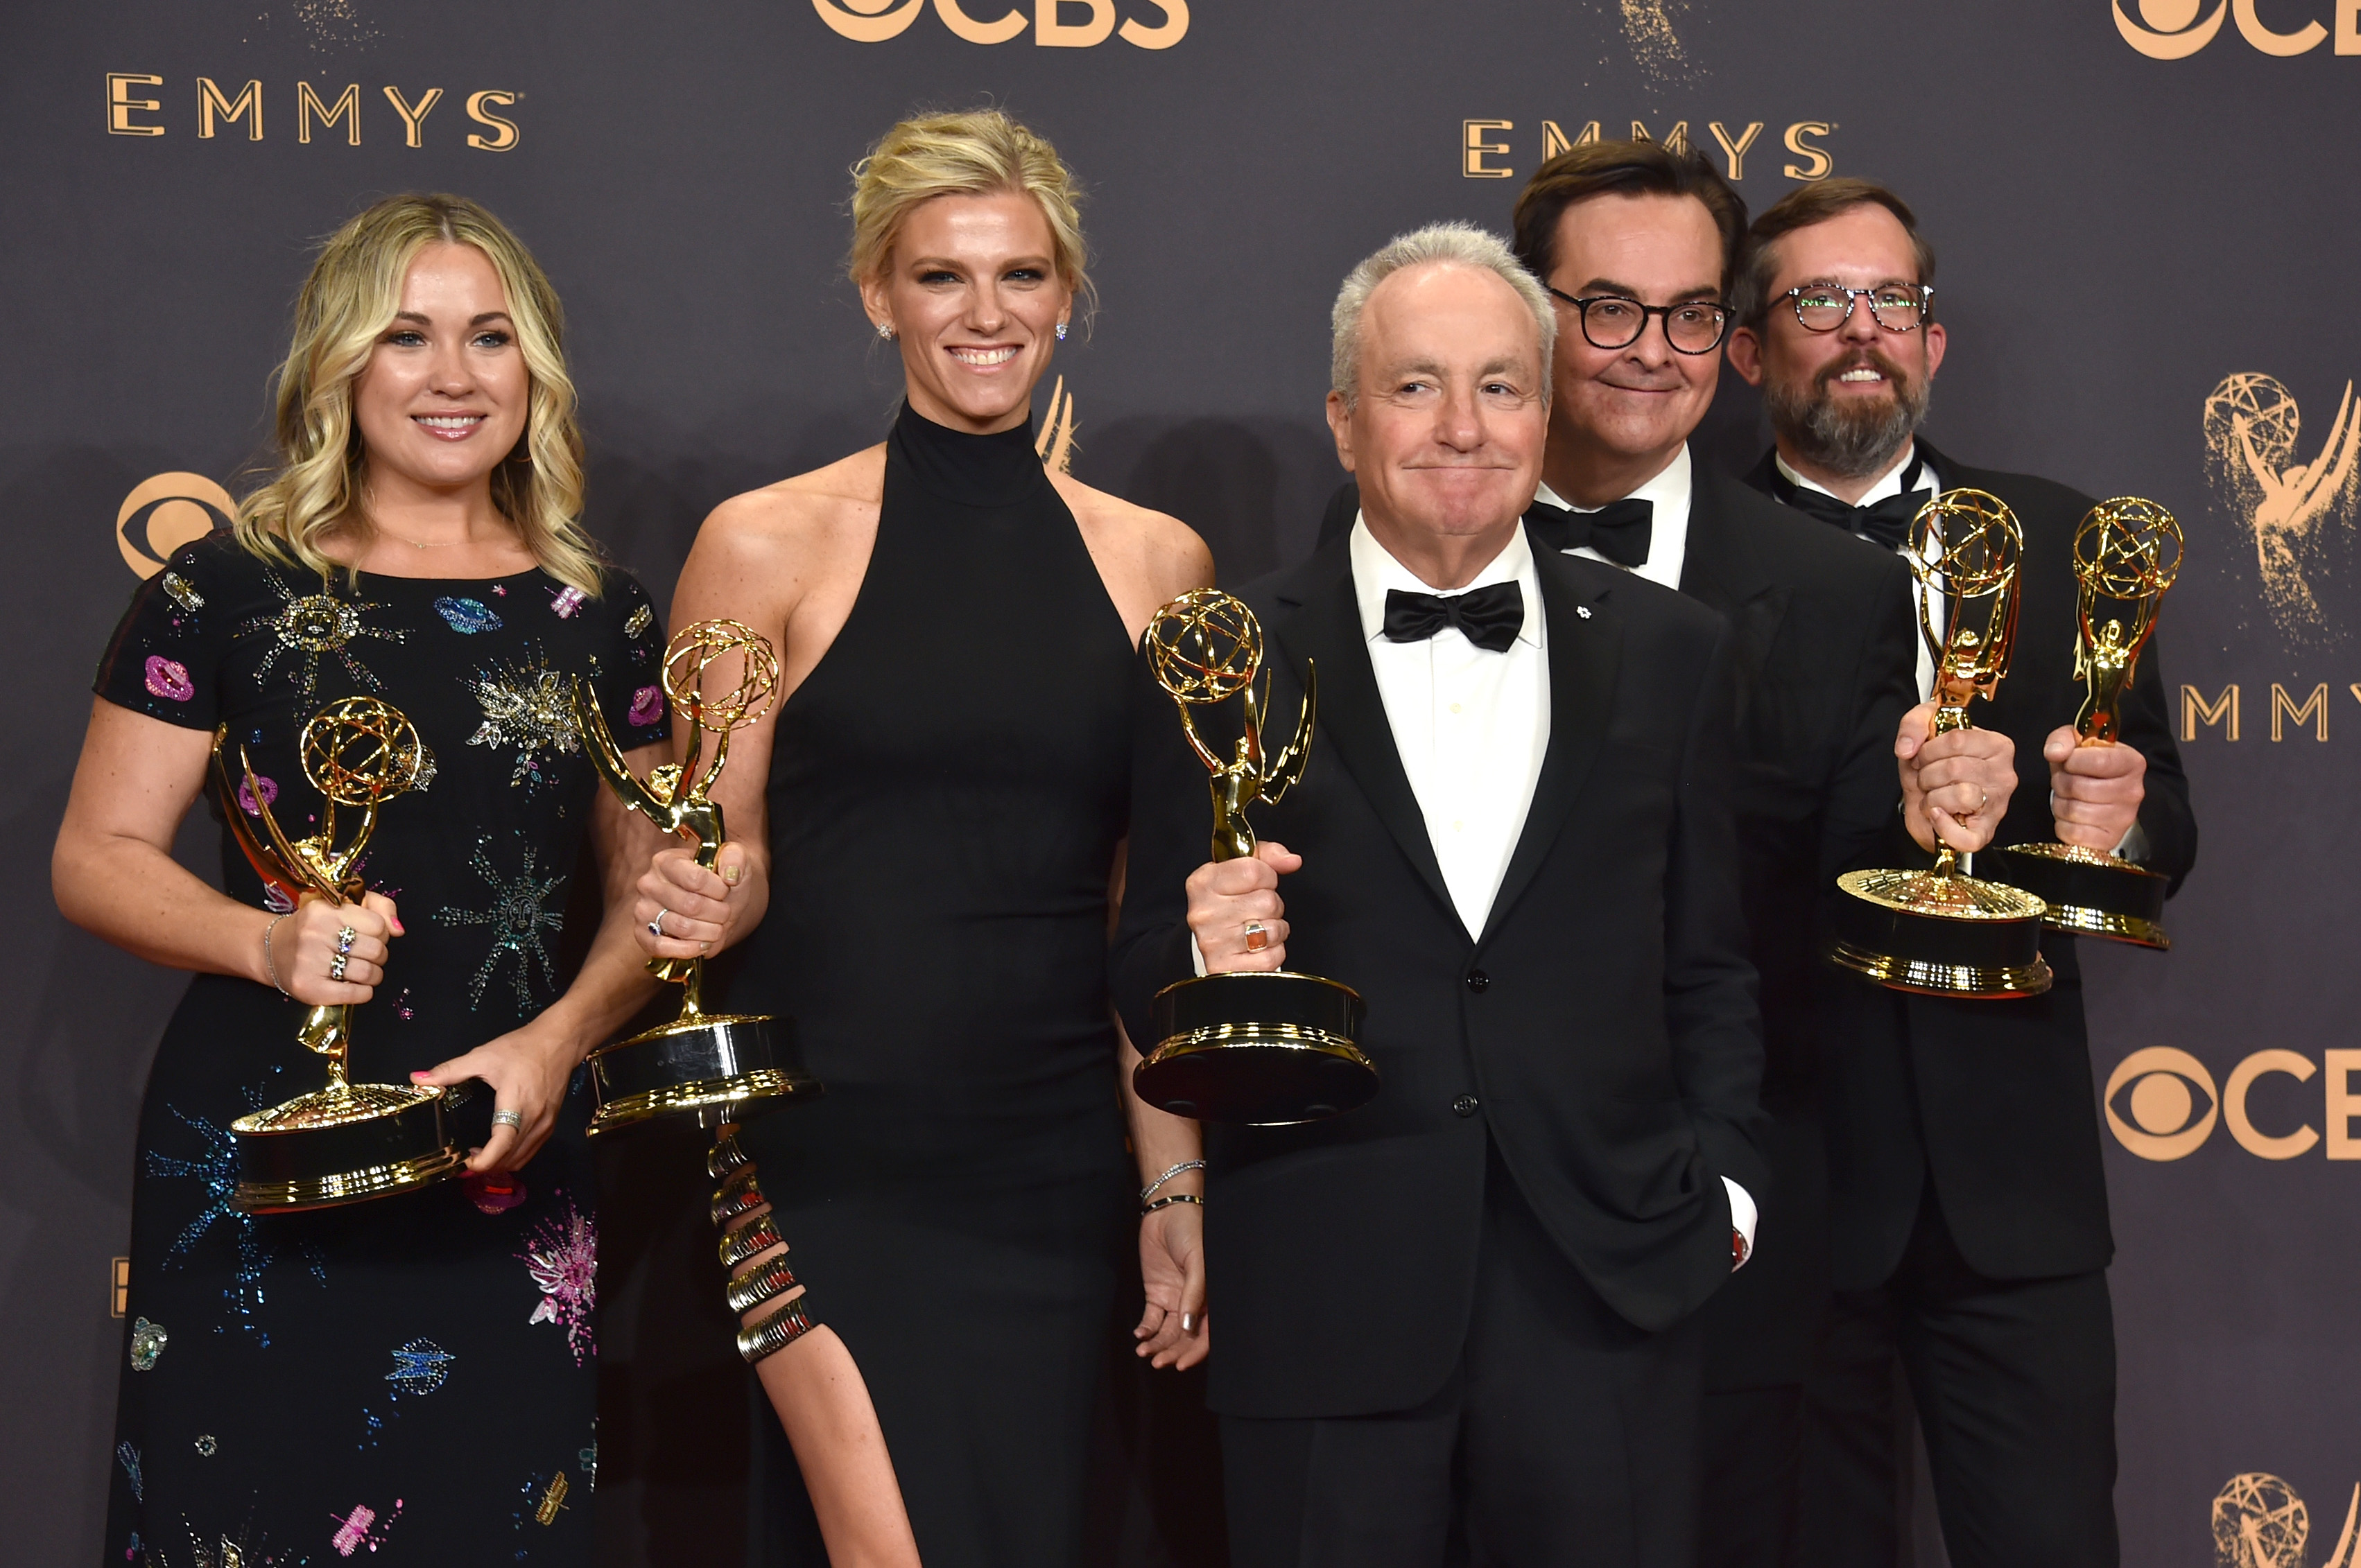 Ben Affleck was secretly at the Emmys with girlfriend Lindsay Shookus